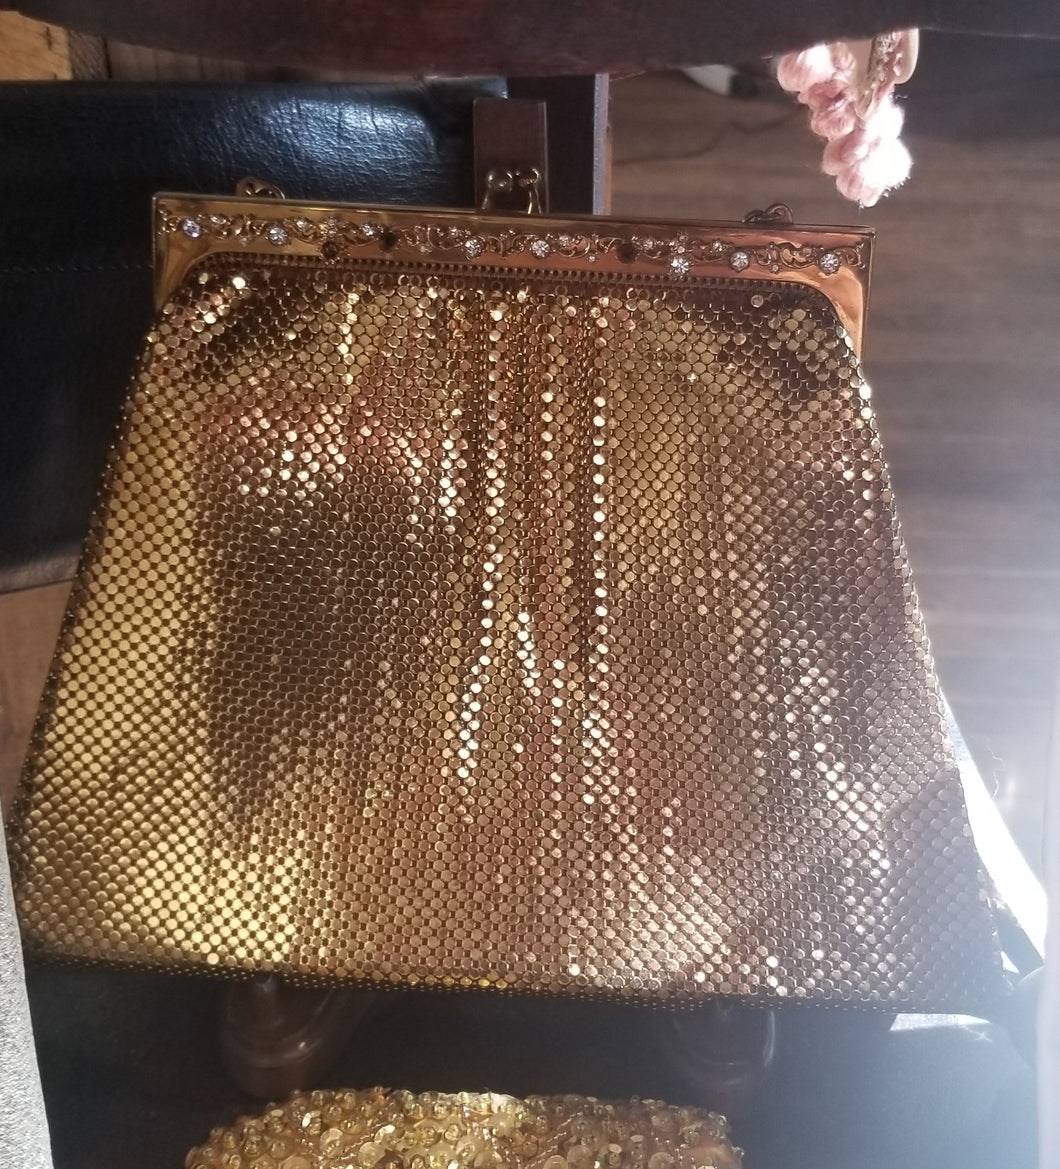 Whiting and Davis Goldtone Chainmail Purse